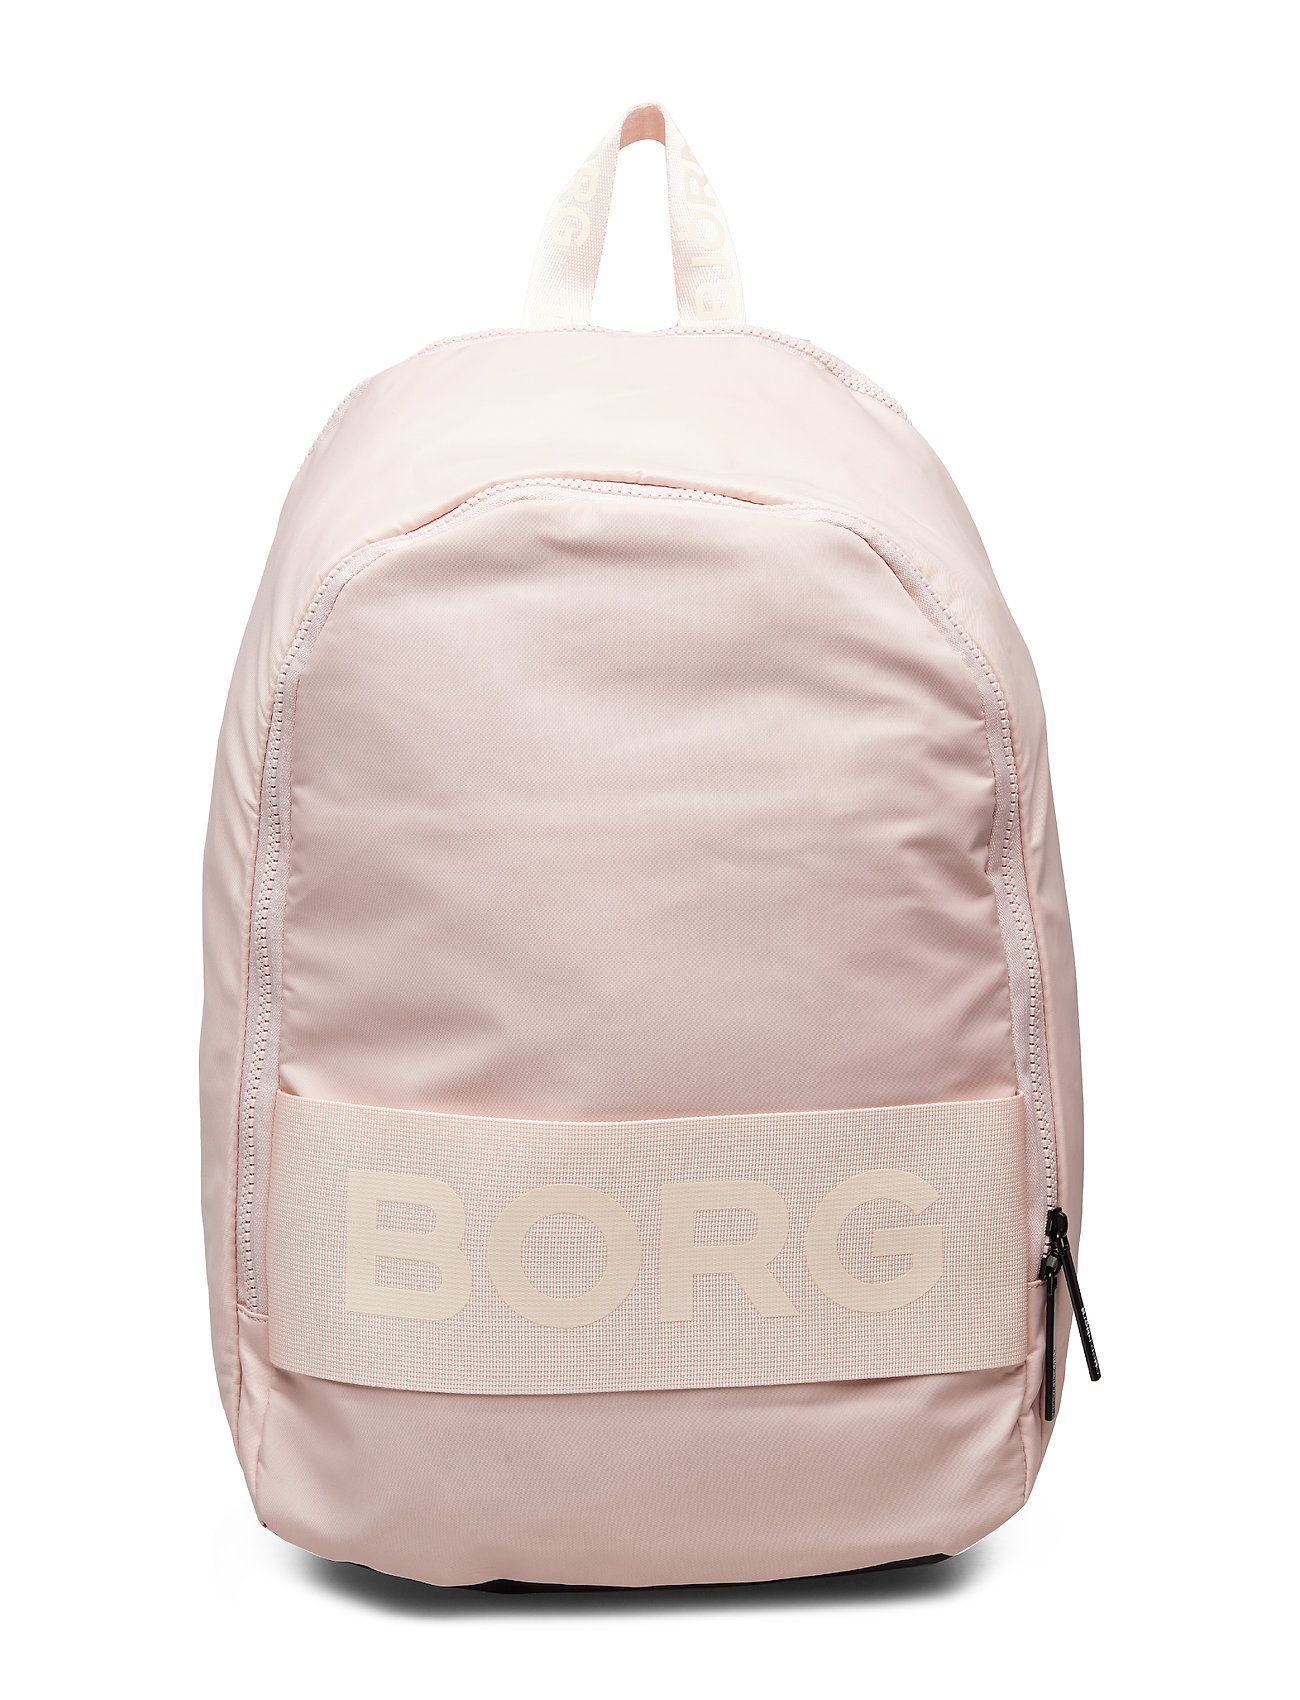 Björn Borg Bags COCO - DUSTY PINK